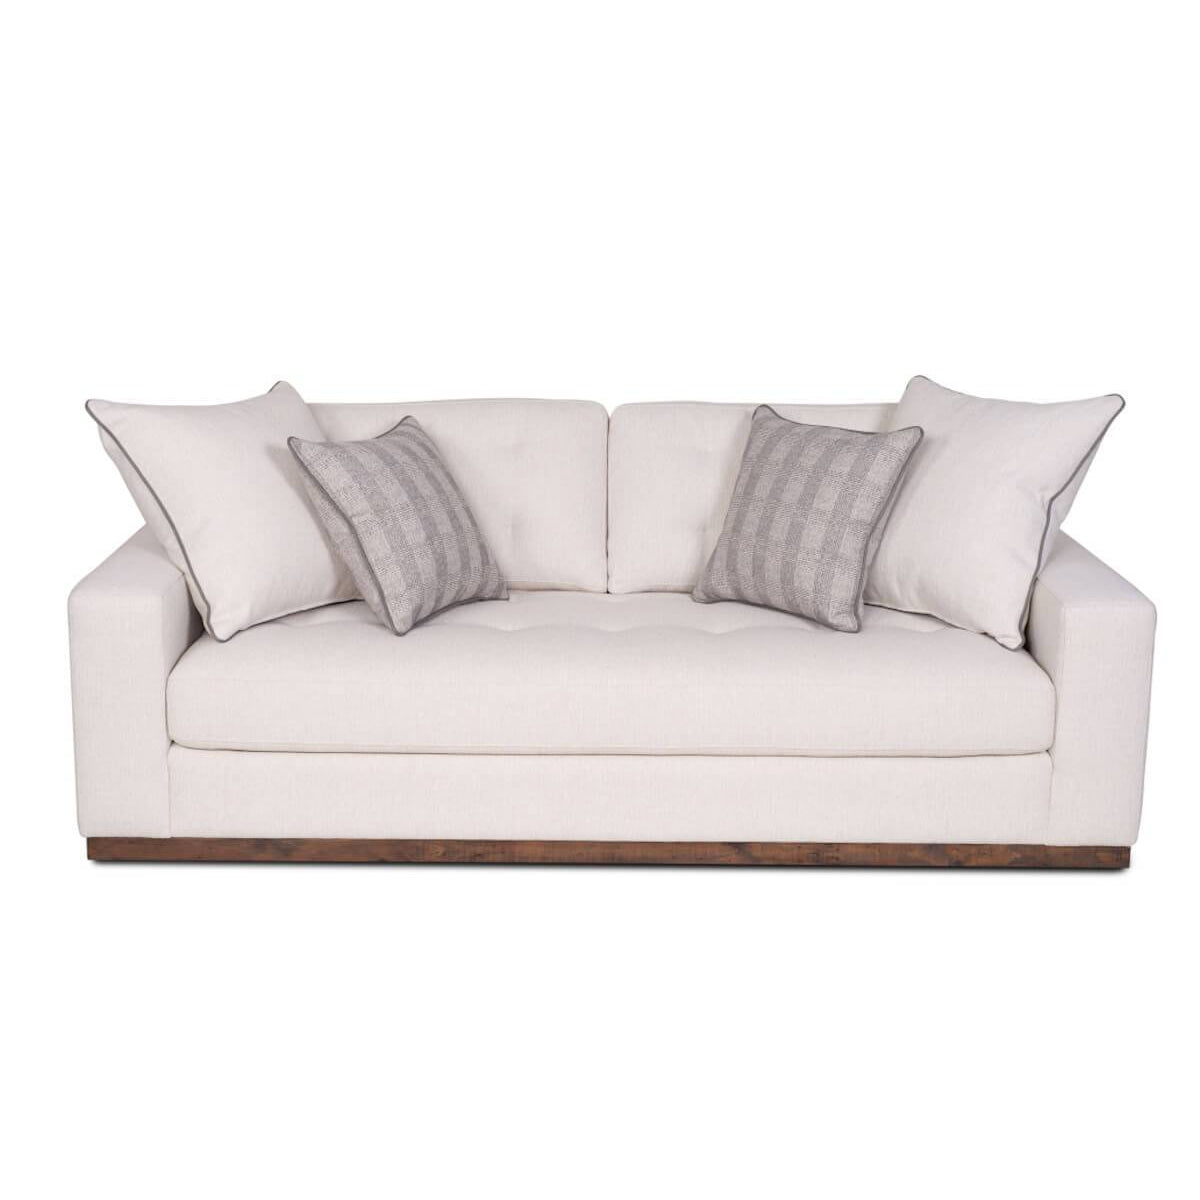 Natural Wood Base Sofa